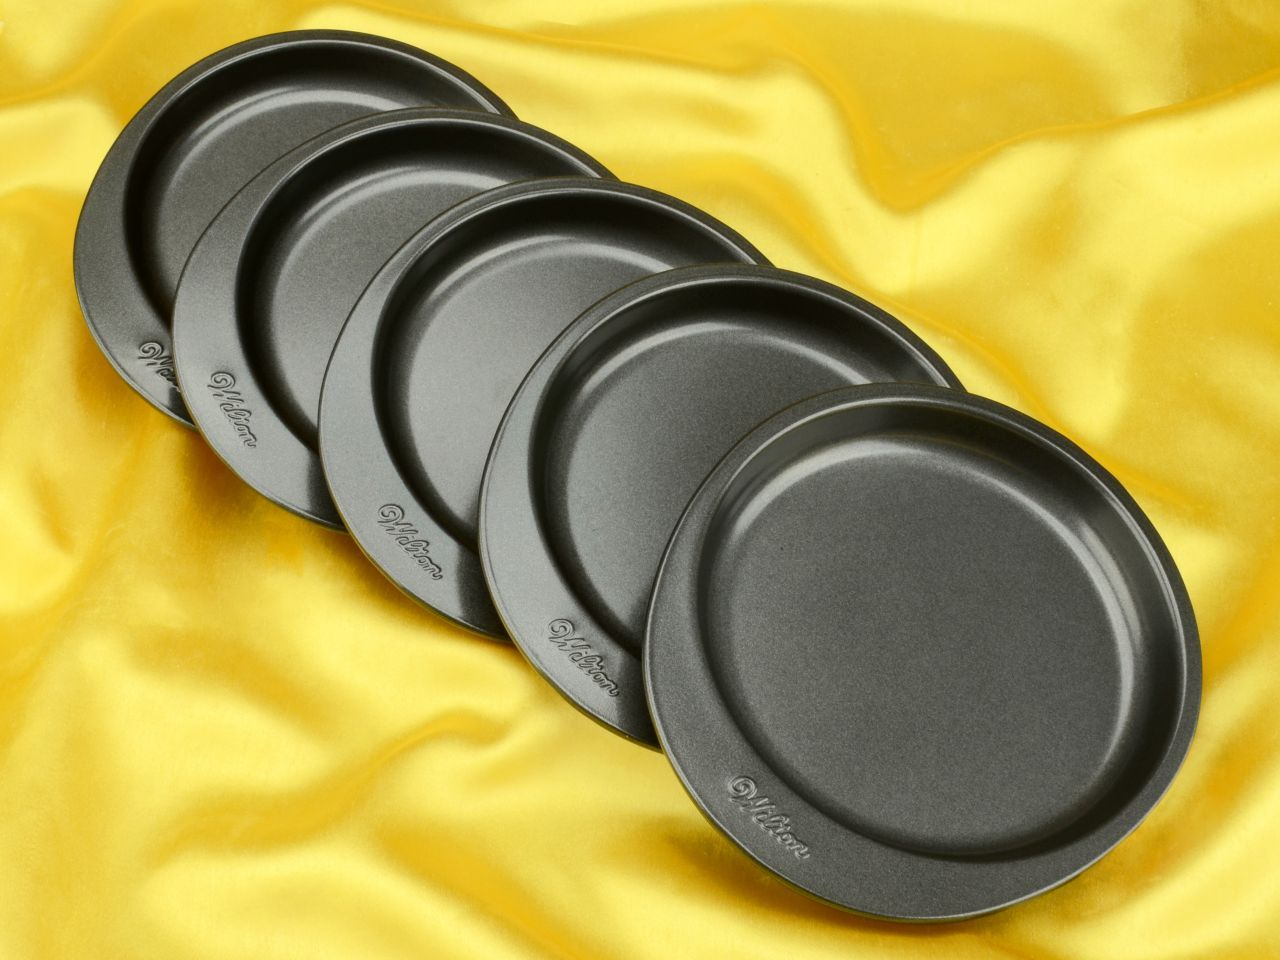 Wilton Cake Pan Easy Layers 15cm 5er Set von Wilton